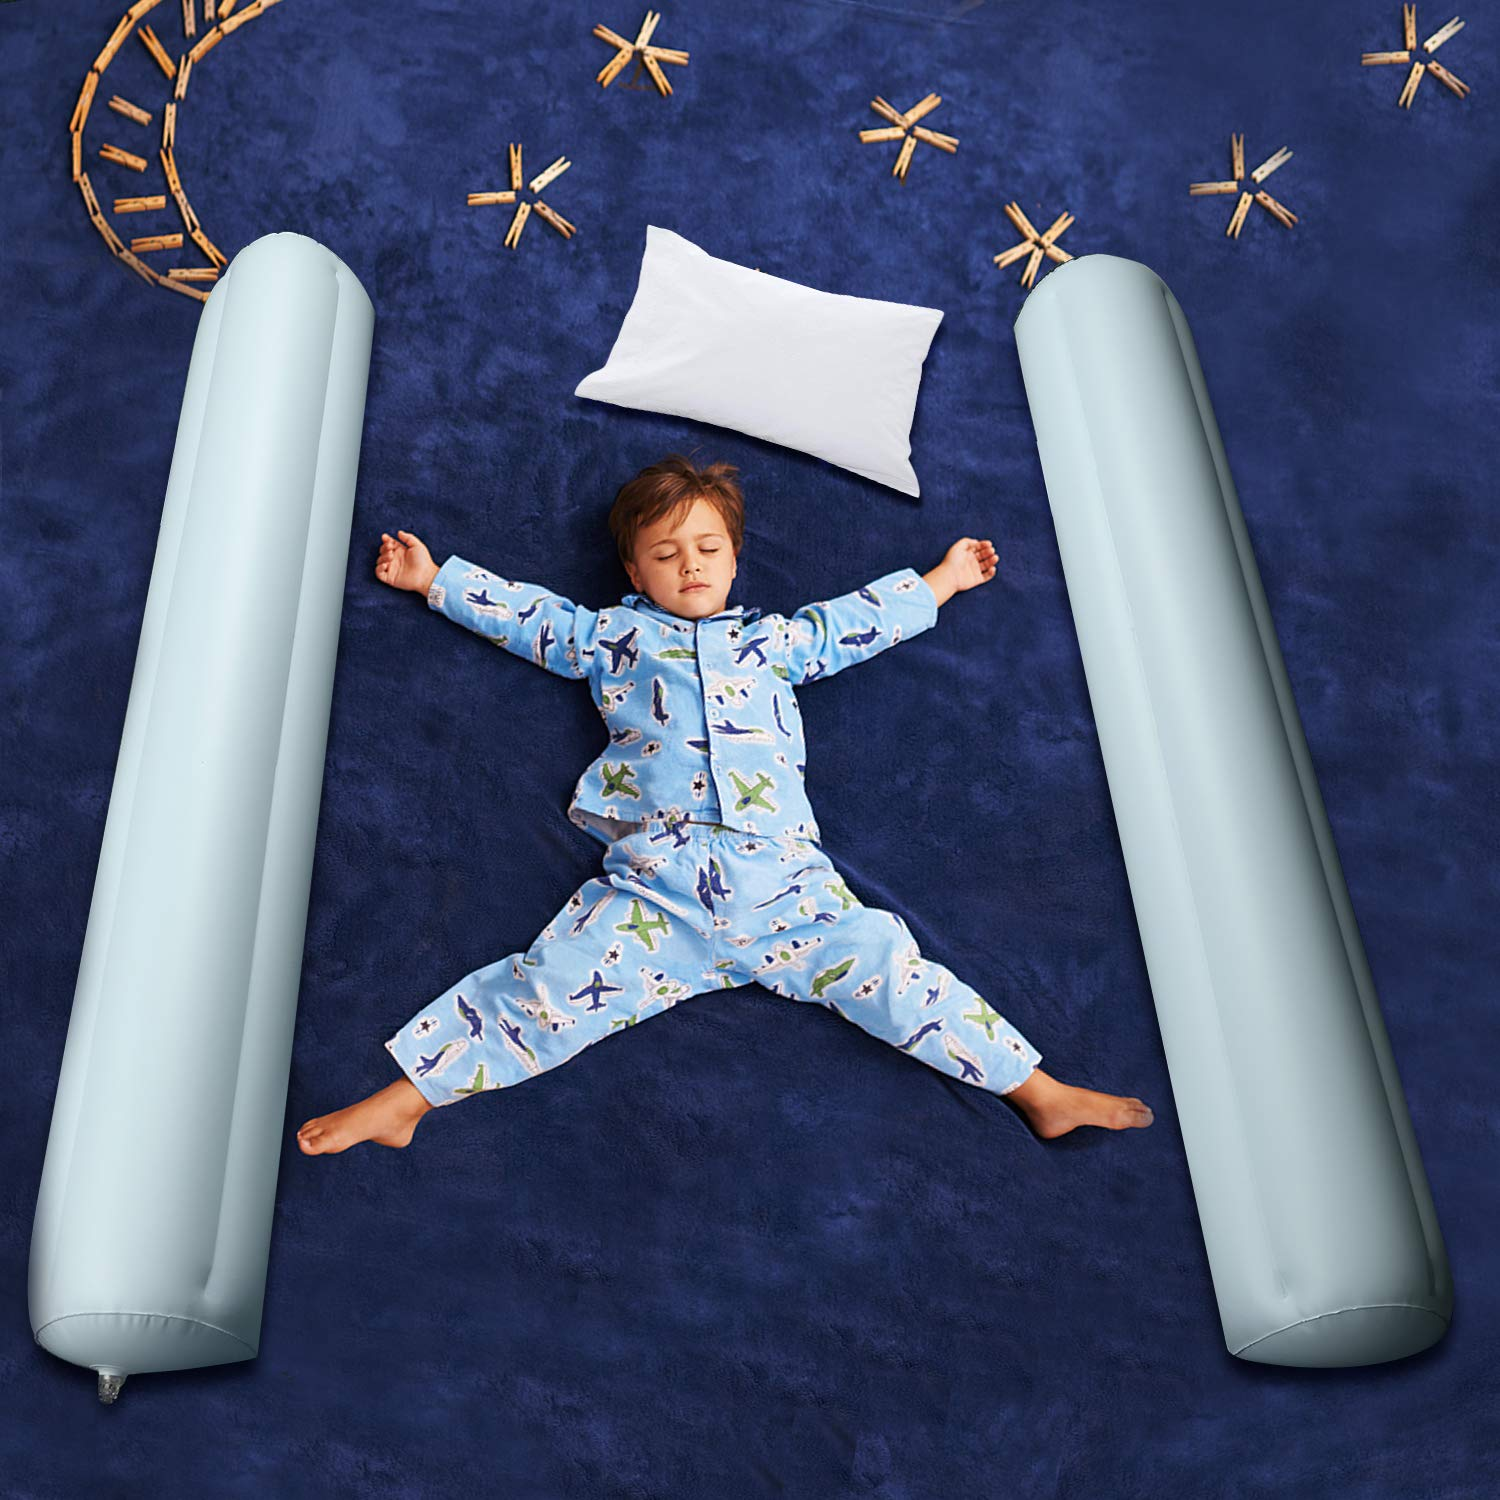 Inflatable Bed Rails for Toddlers, Carttiya Travel Toddler Bed Rail Bumpers Water-Proof & Leak-Proof Non-Slip, Portable Toddler Bed Rail Guard, 49 Inches' Long Double Rails for All Bed Sizes